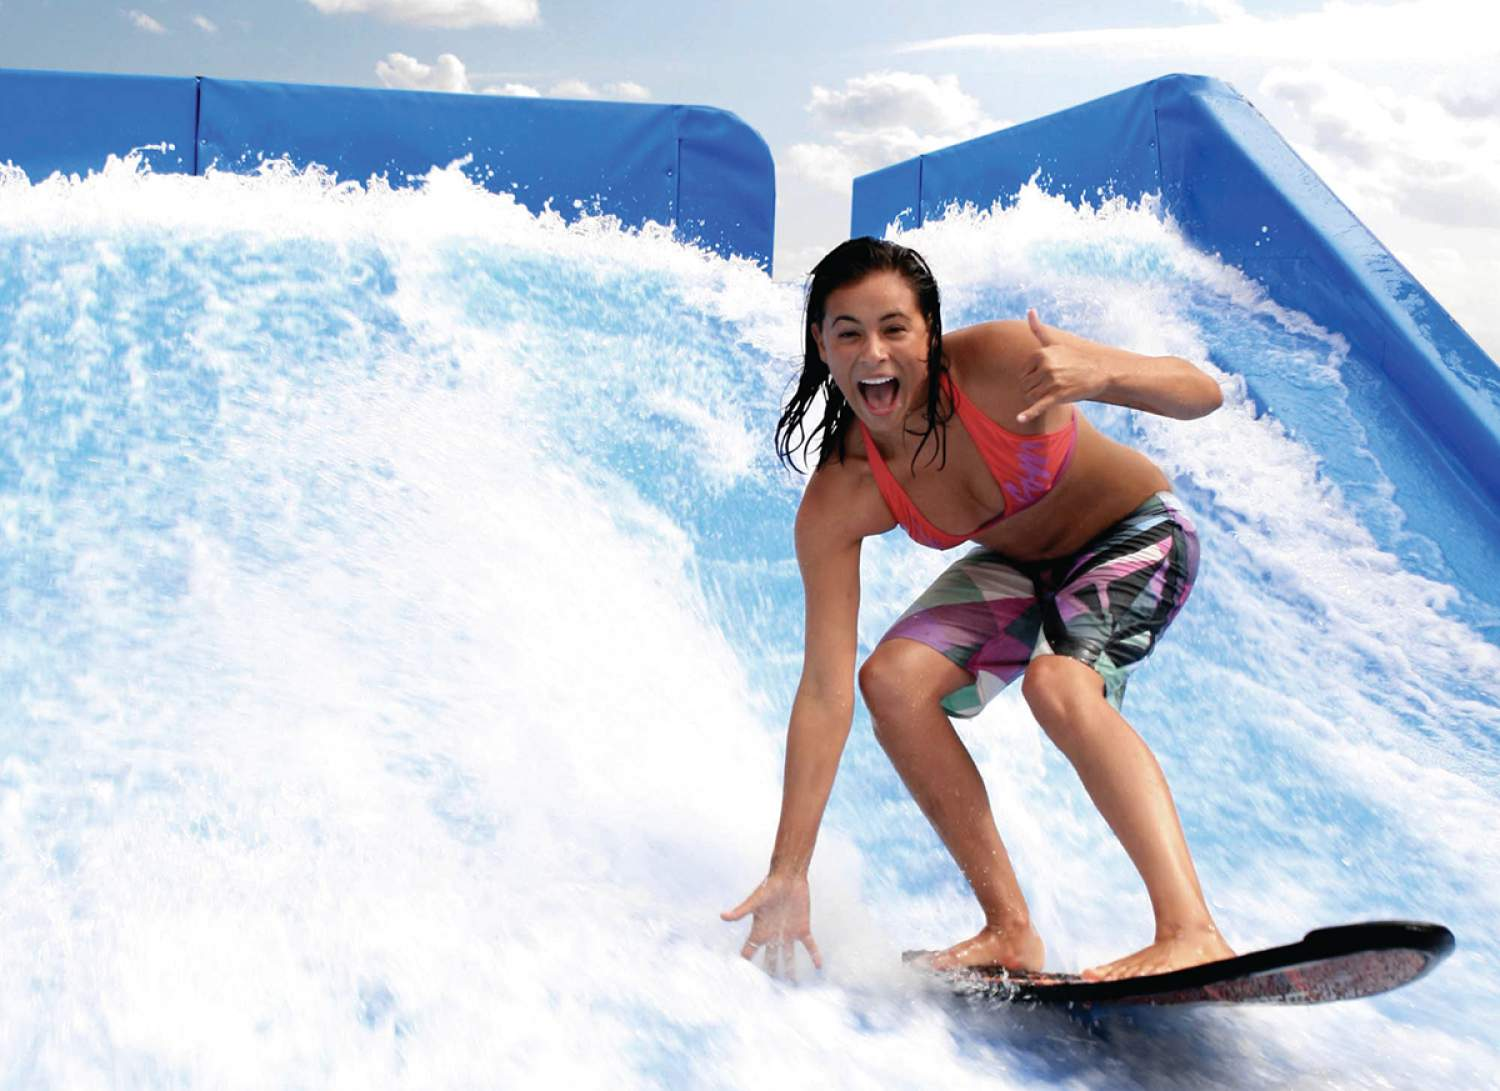 Flowrider surfing, Royal Caribbean